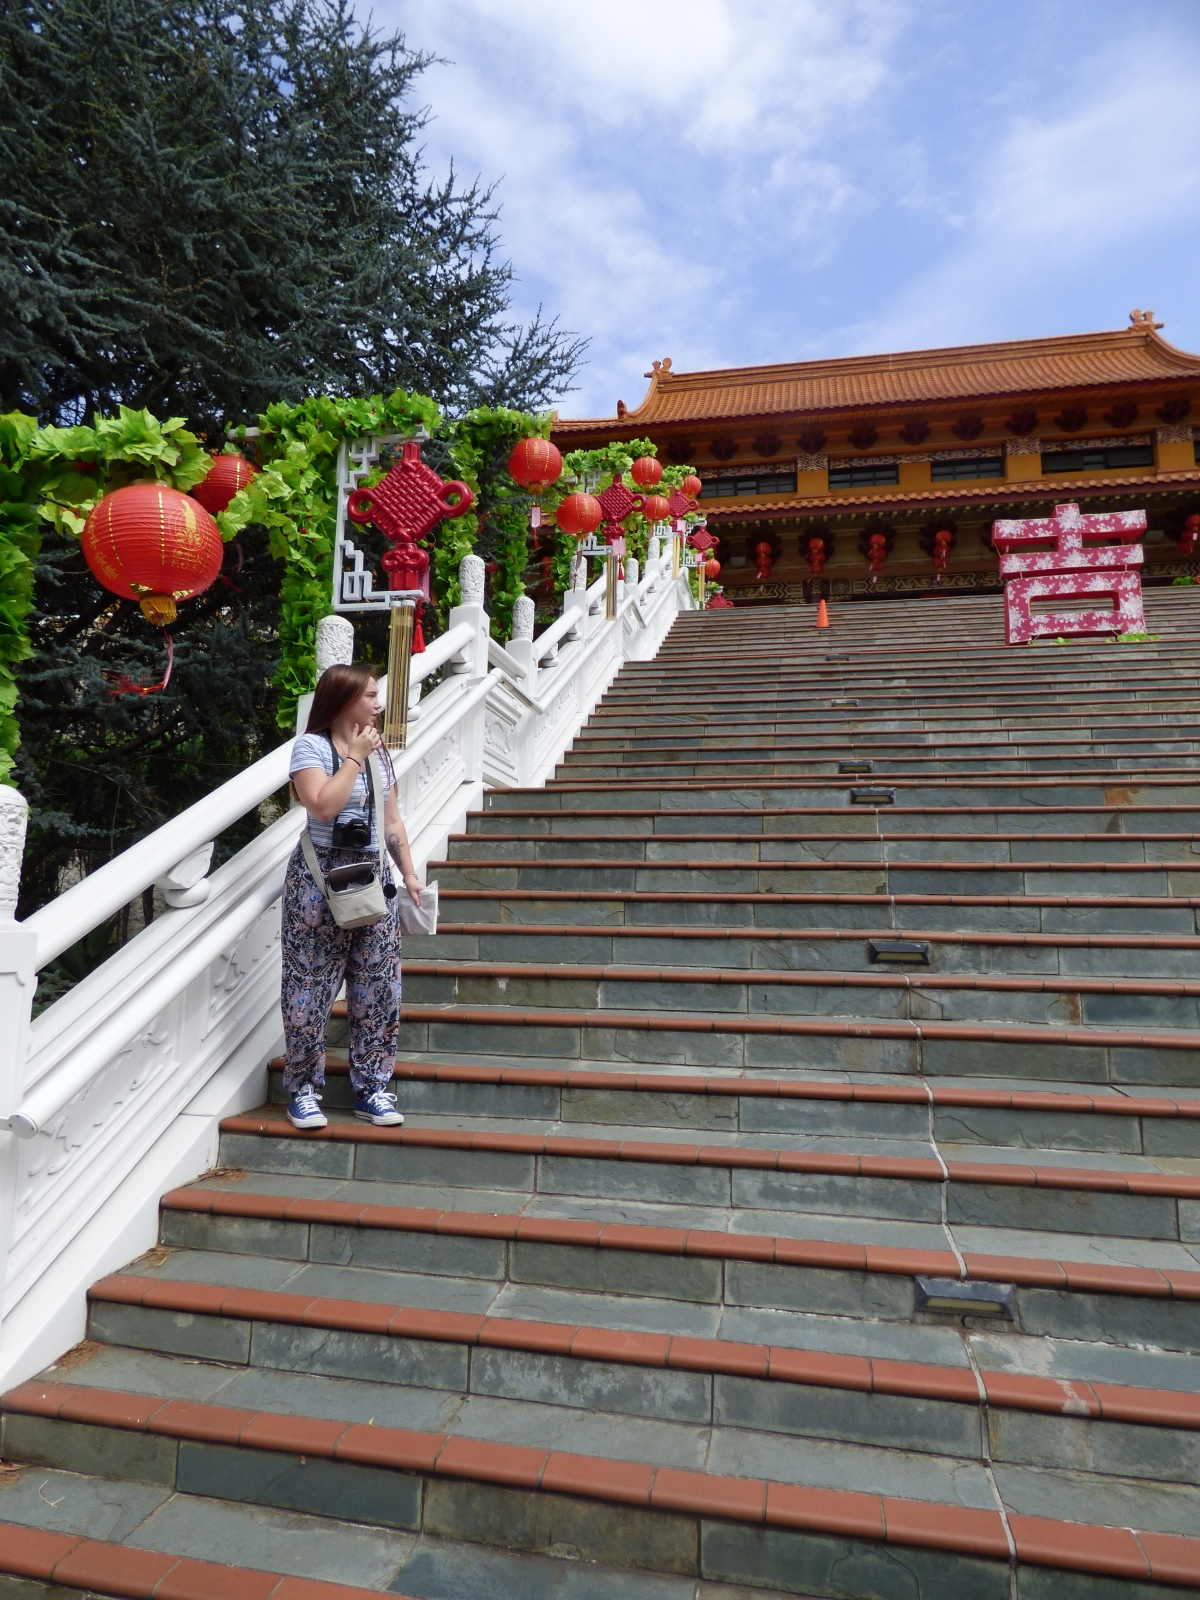 On the temple steps at Nan Tien.